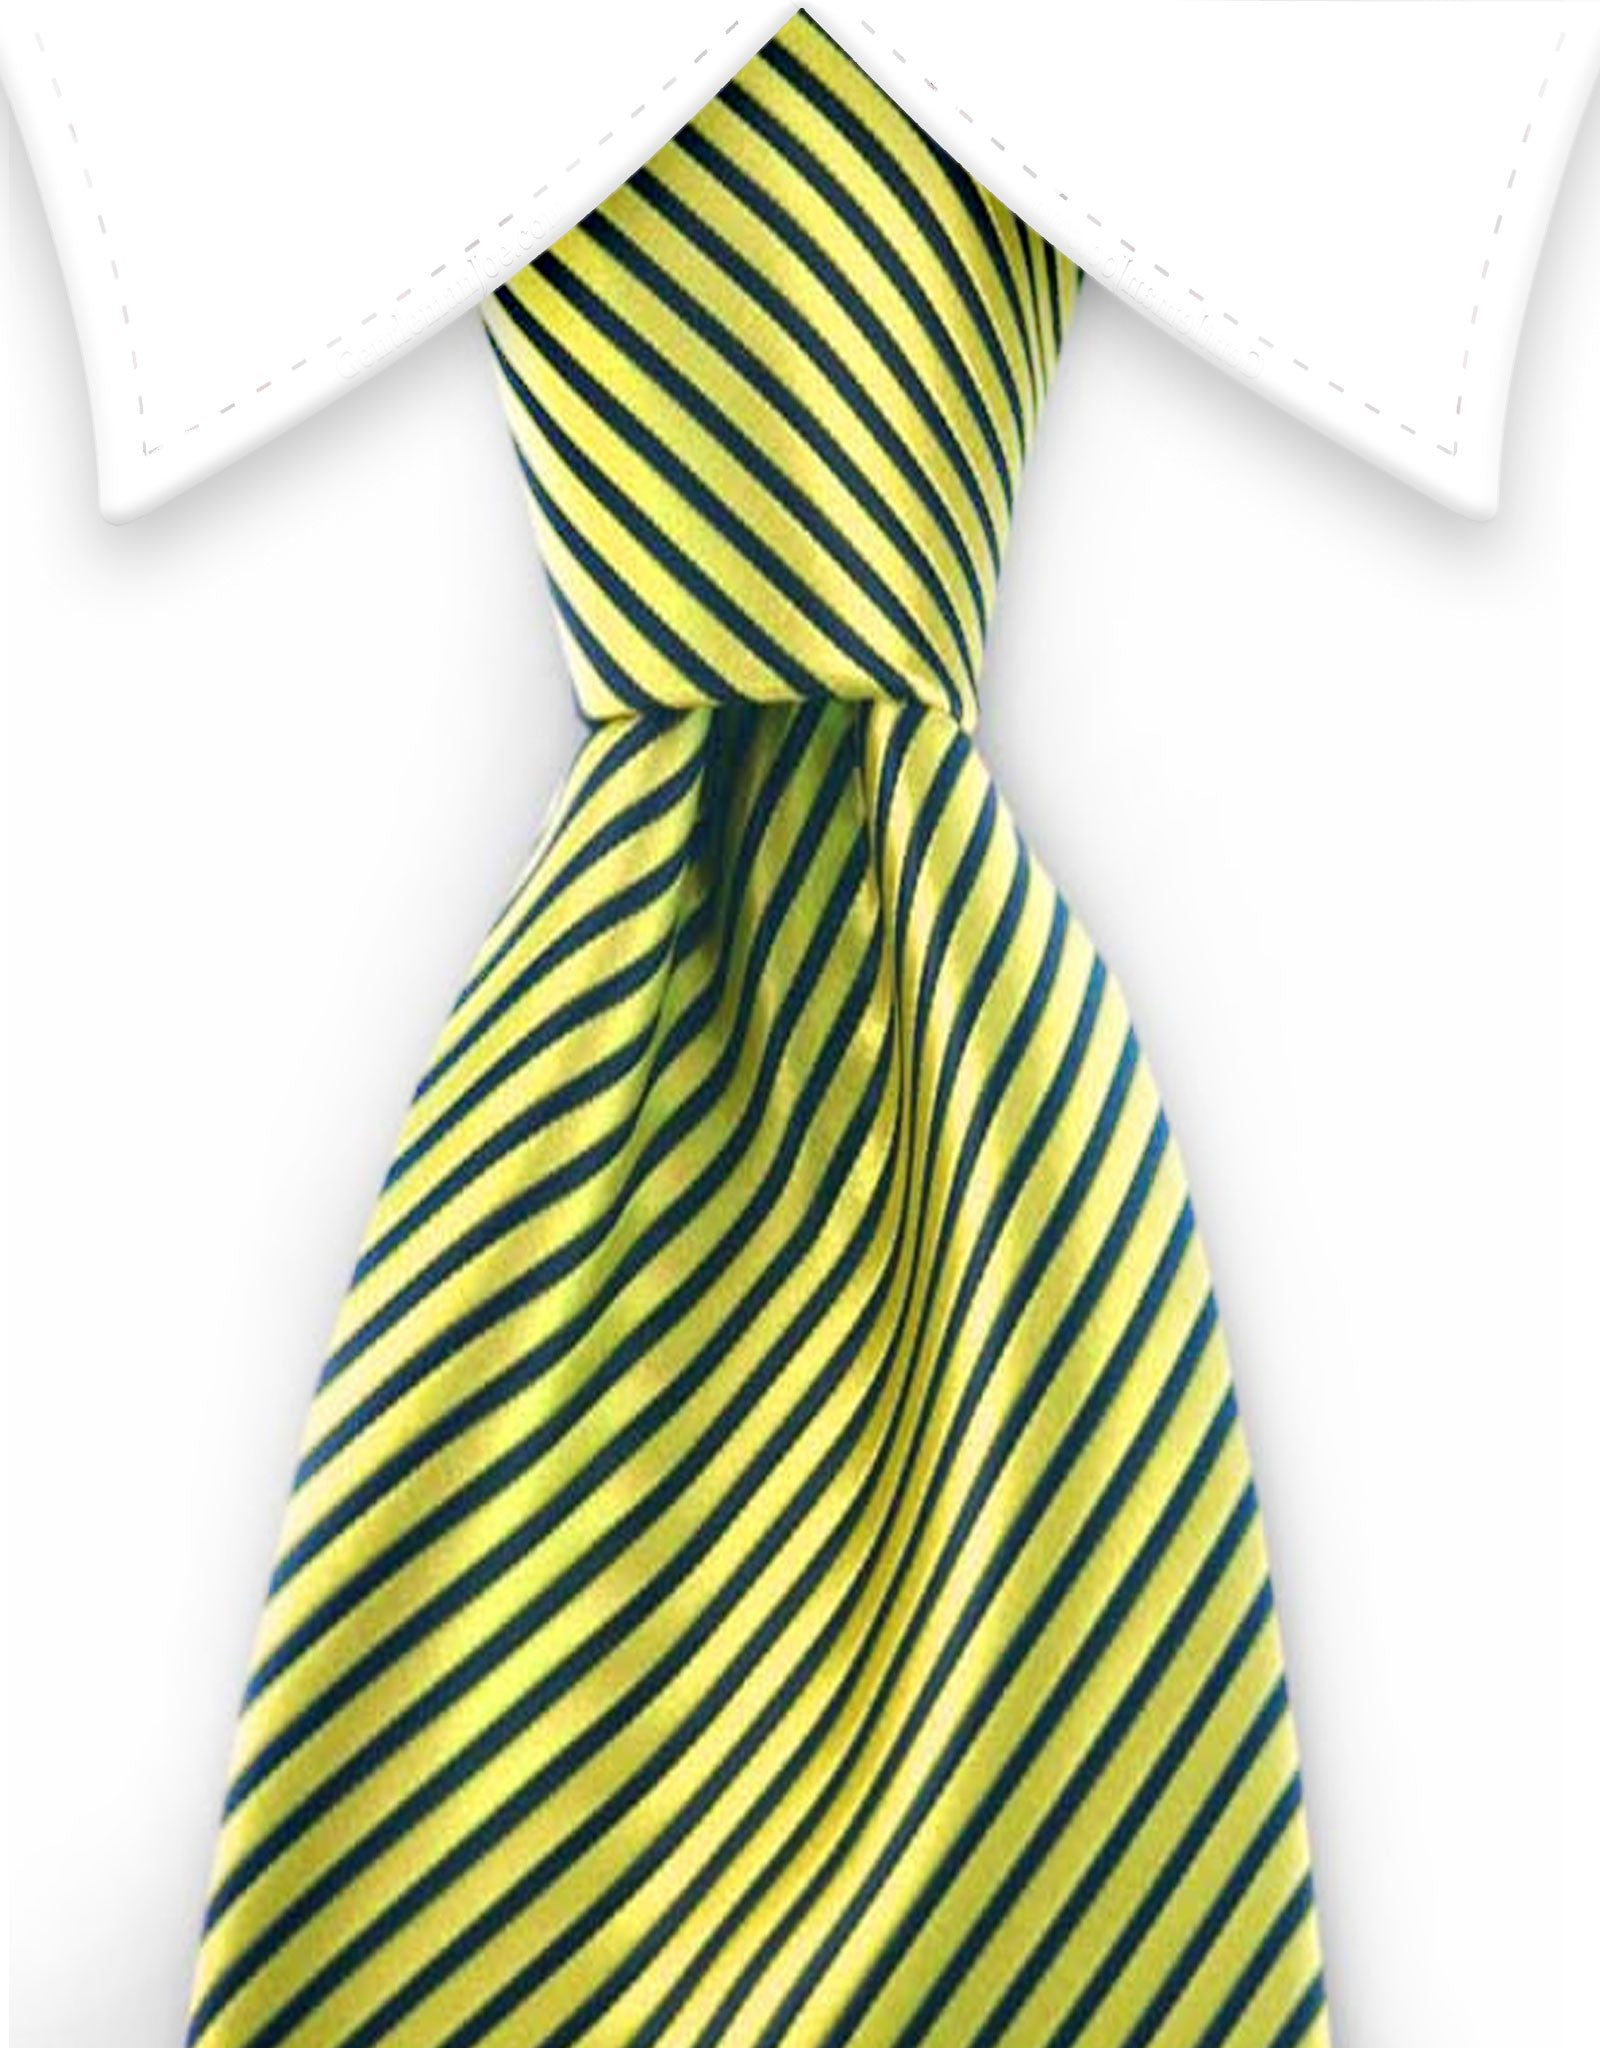 neon yellow striped tie